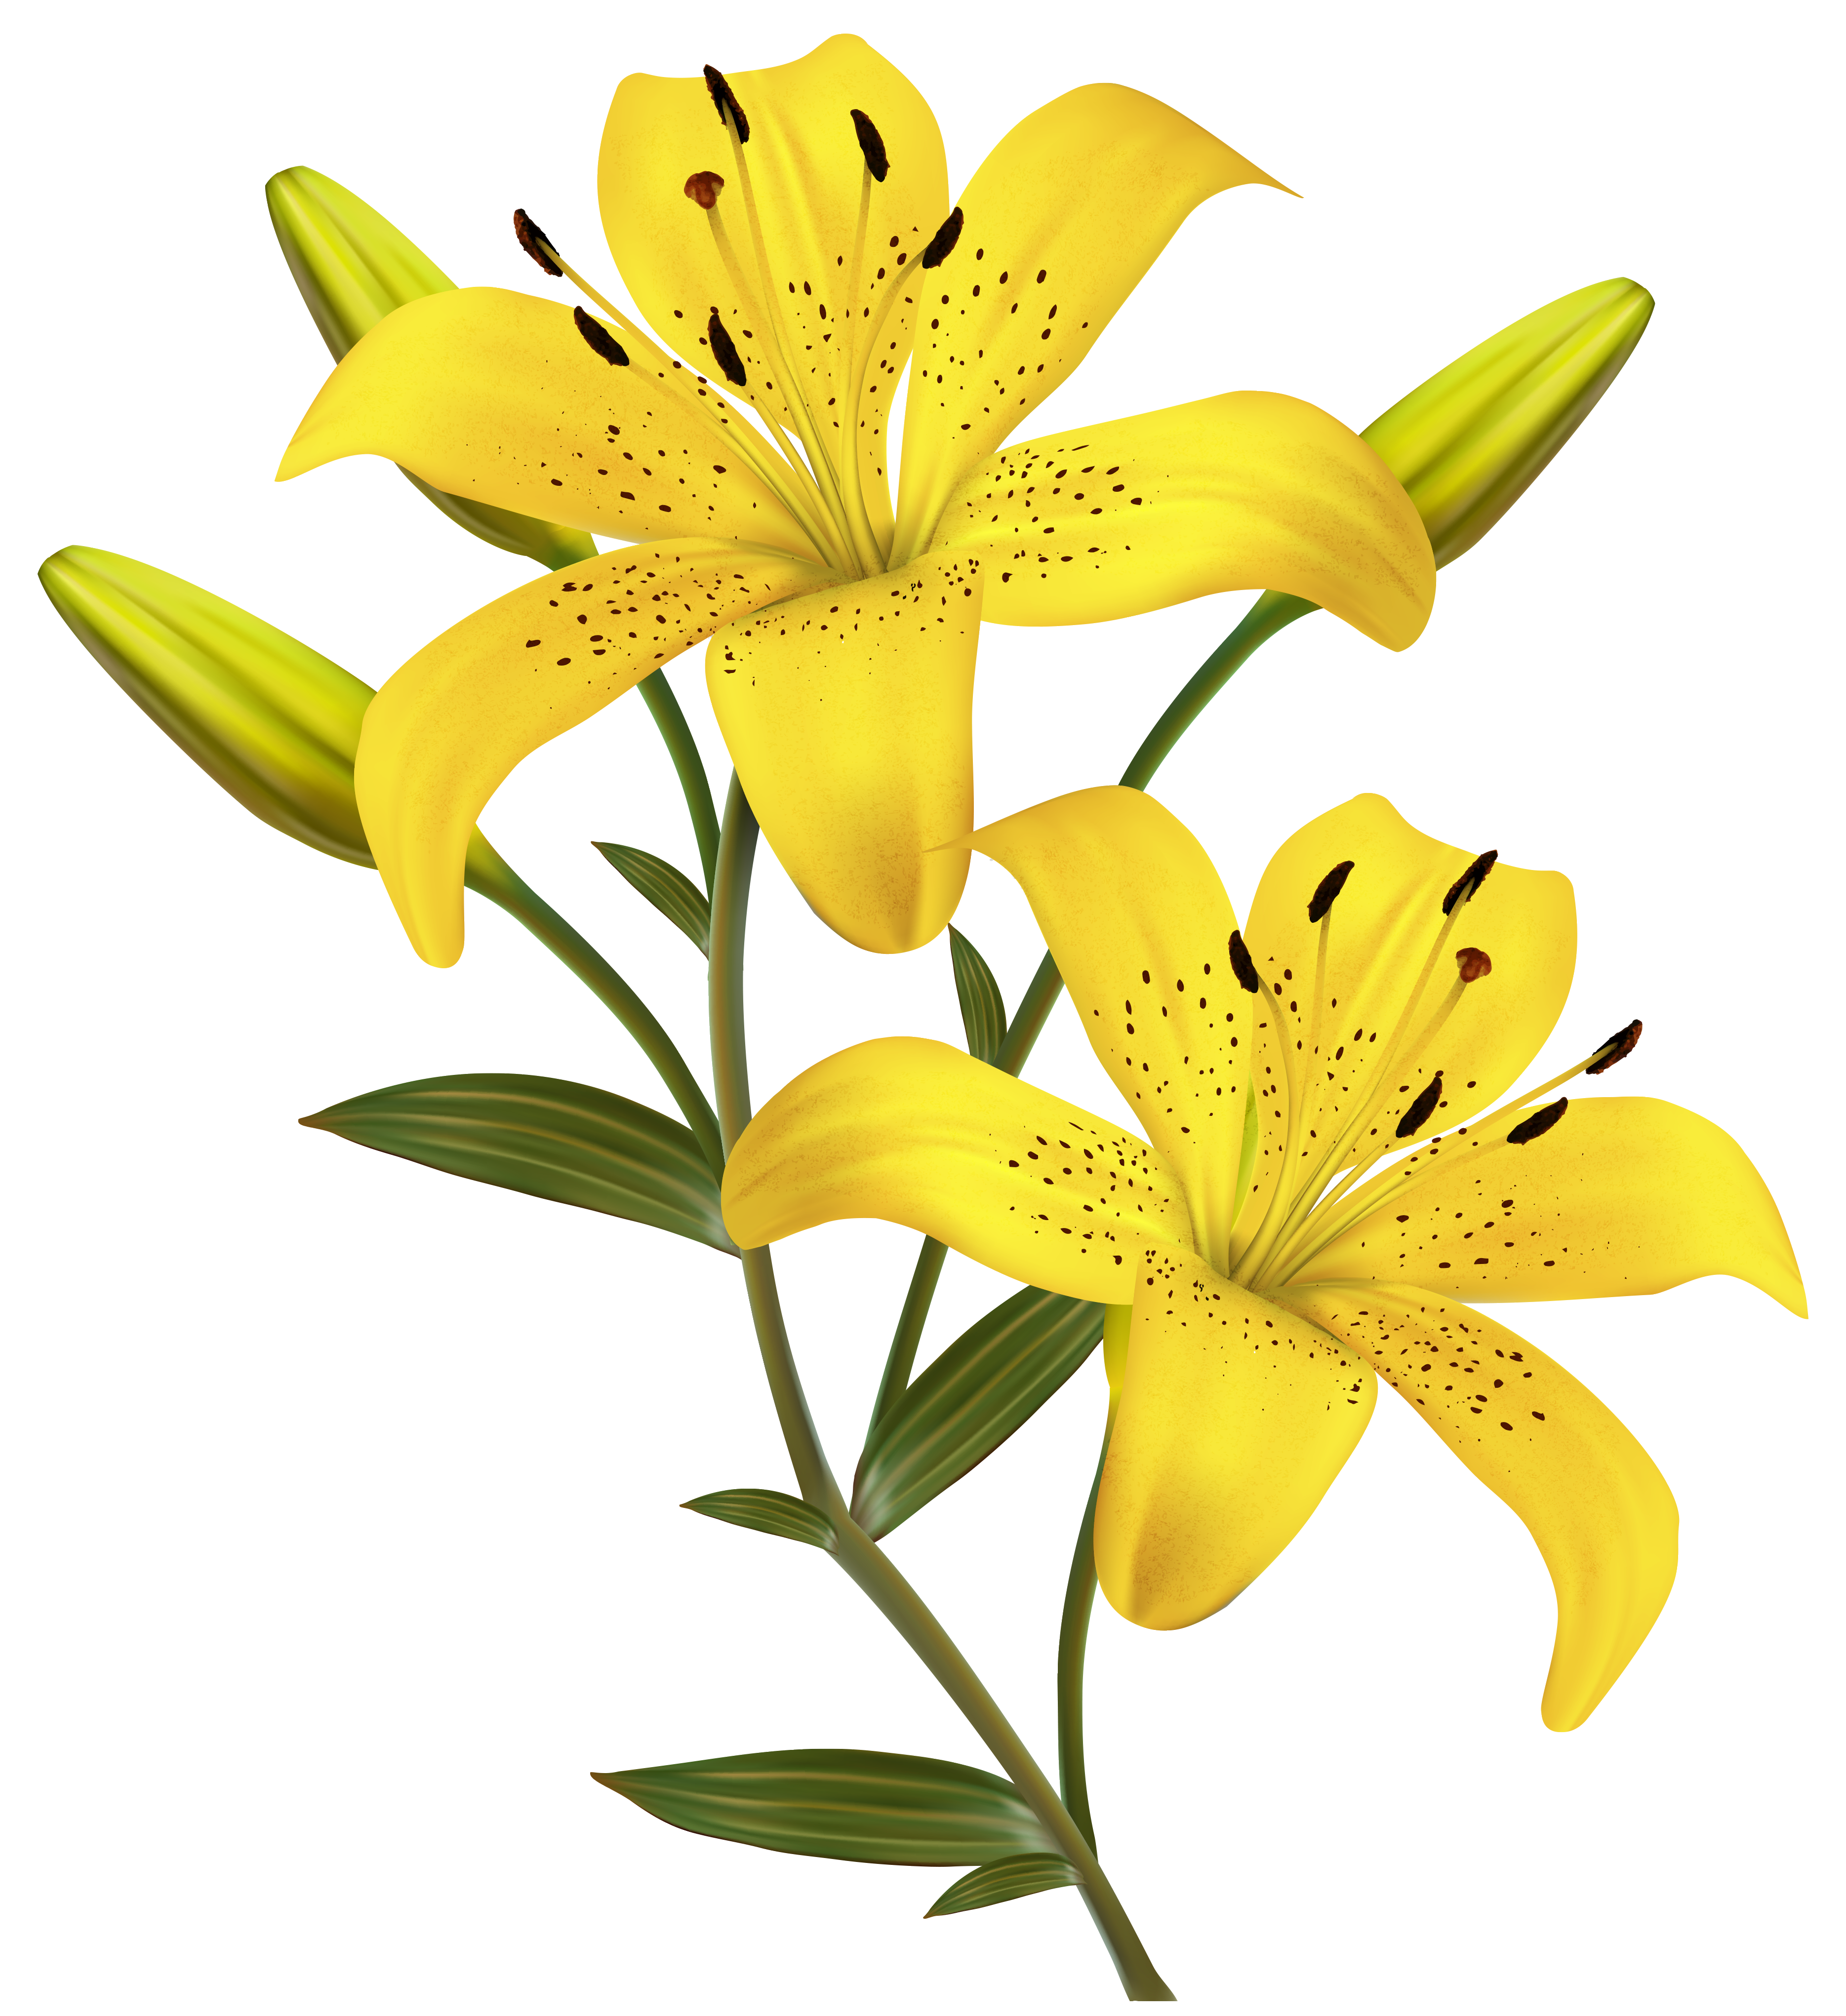 Yellow lilies clip art 3738x4083 Flower painting, Lilies